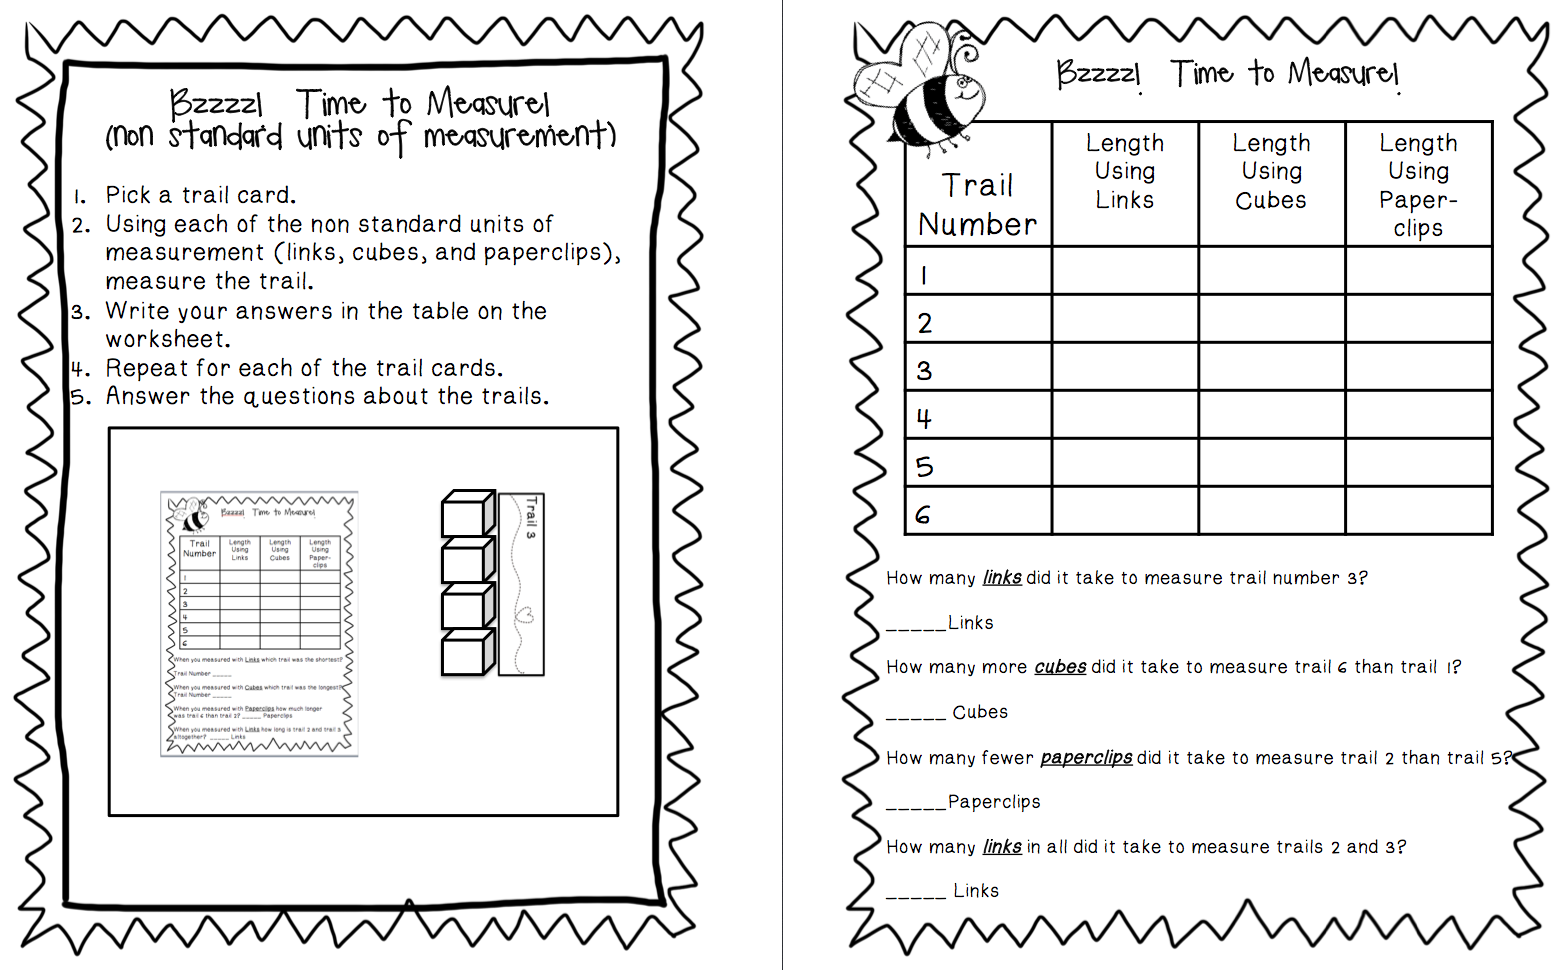 Worksheets Non Standard Measurement Worksheets first grade buddies manic monday 4 22 13 and a new product to measure links cubes paperclips non standard units of measurement this way you can pick the version that best fits your